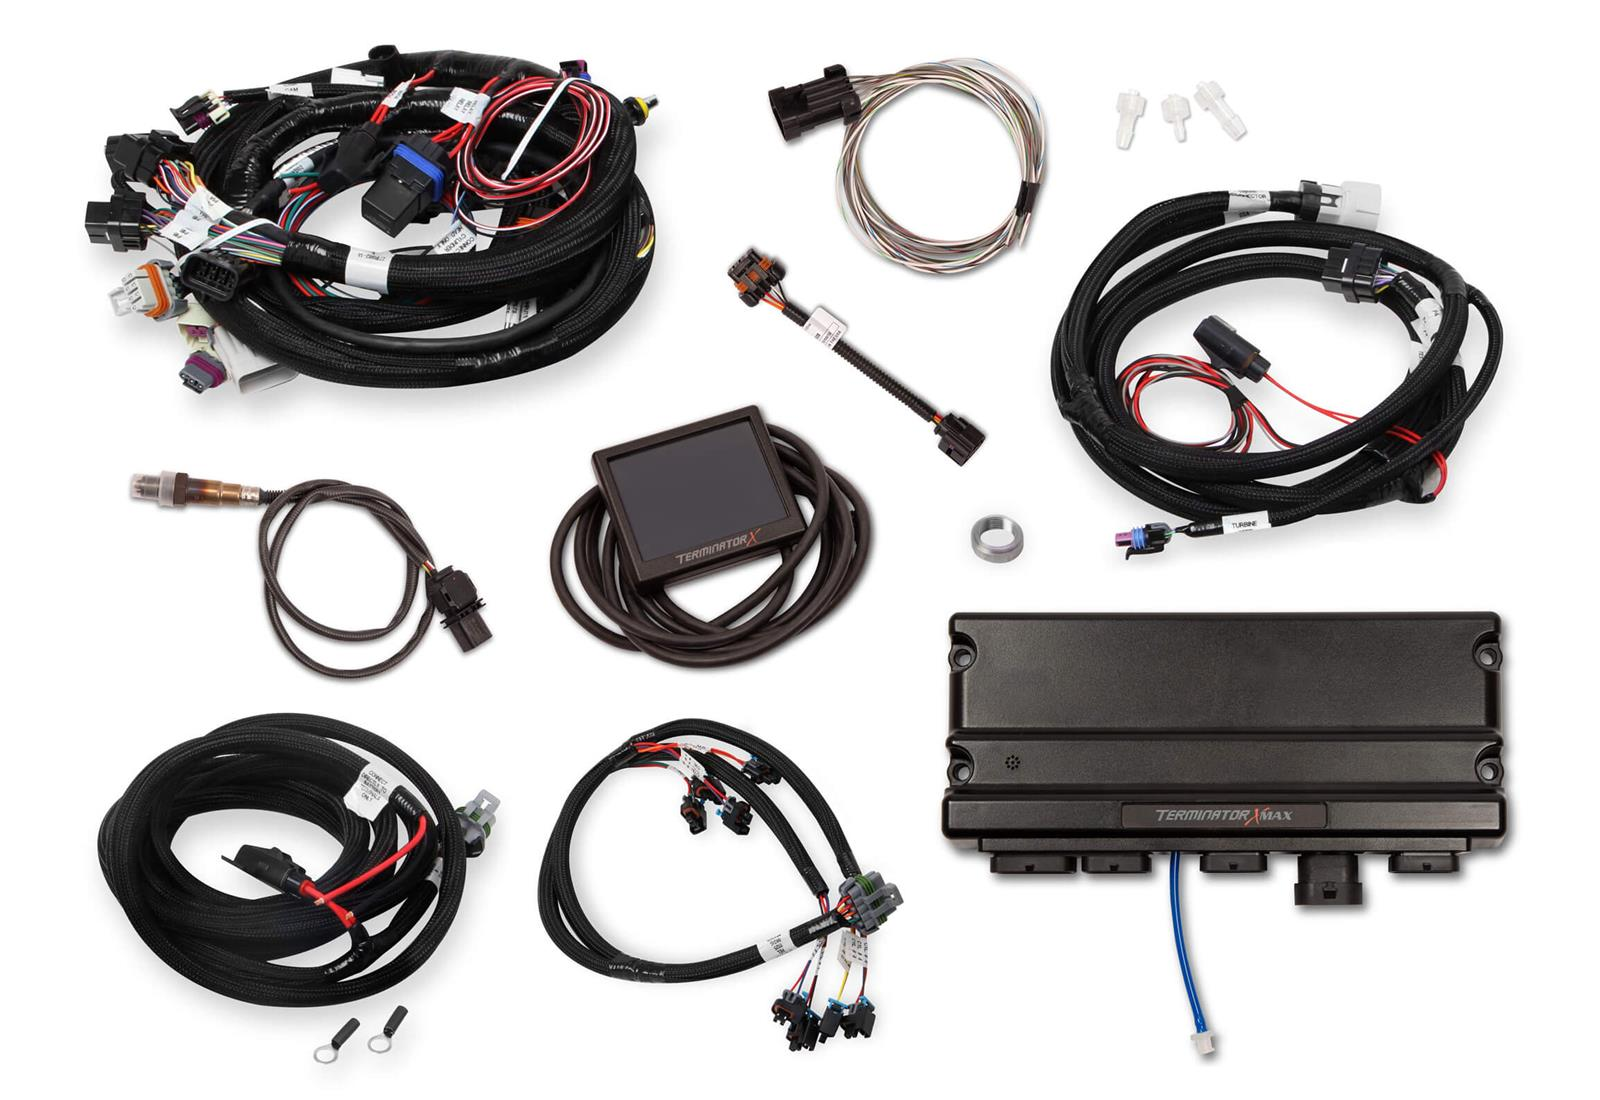 hight resolution of holley terminator x max engine management systems 550 917 free shipping on orders over 99 at summit racing